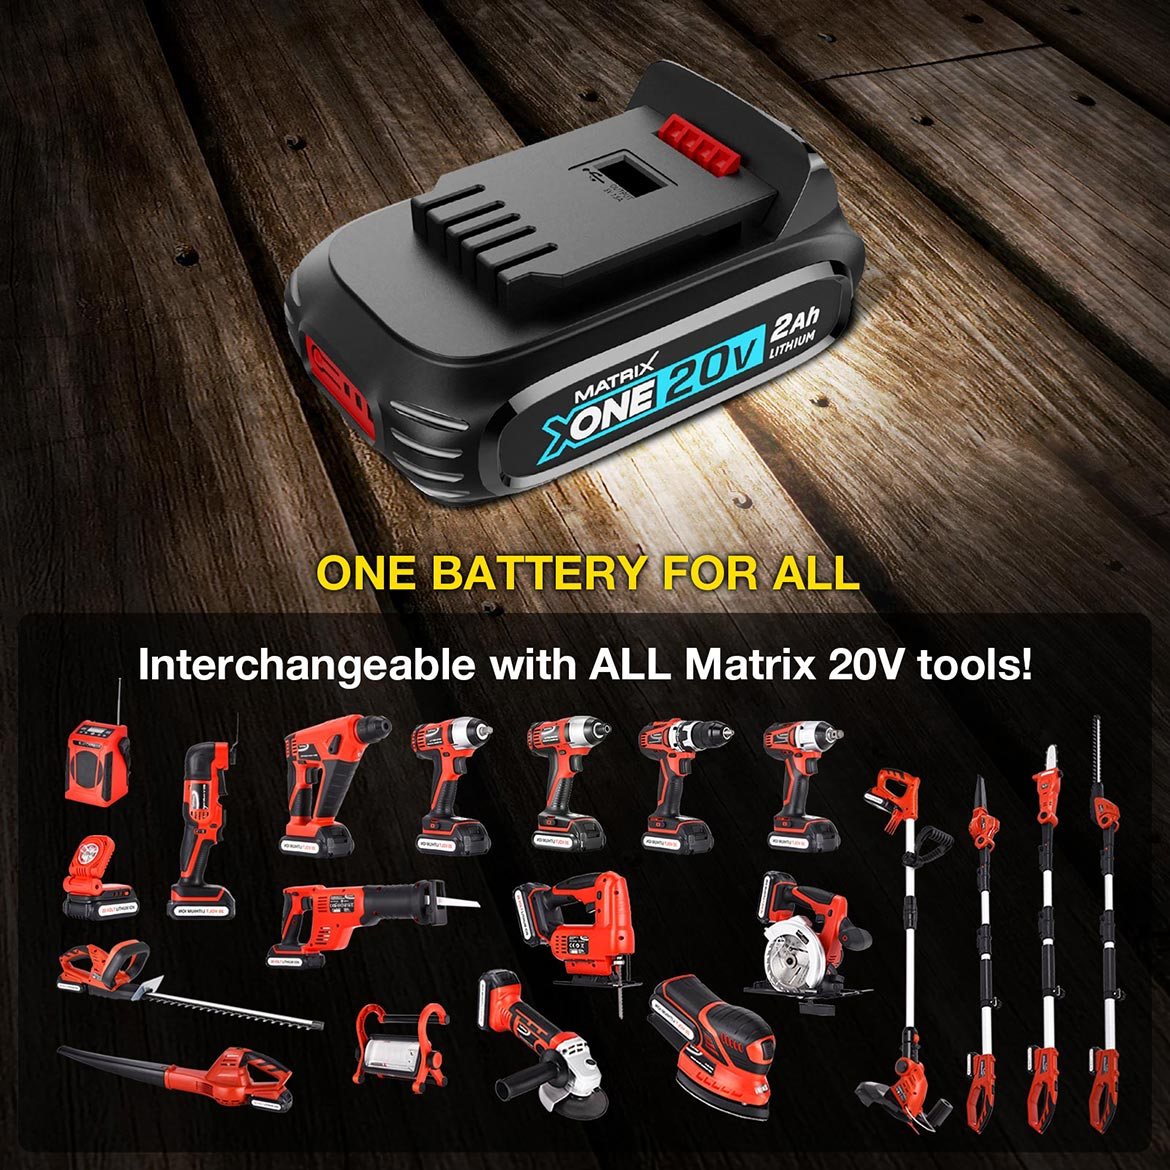 ONE BATTERY FOR ALL